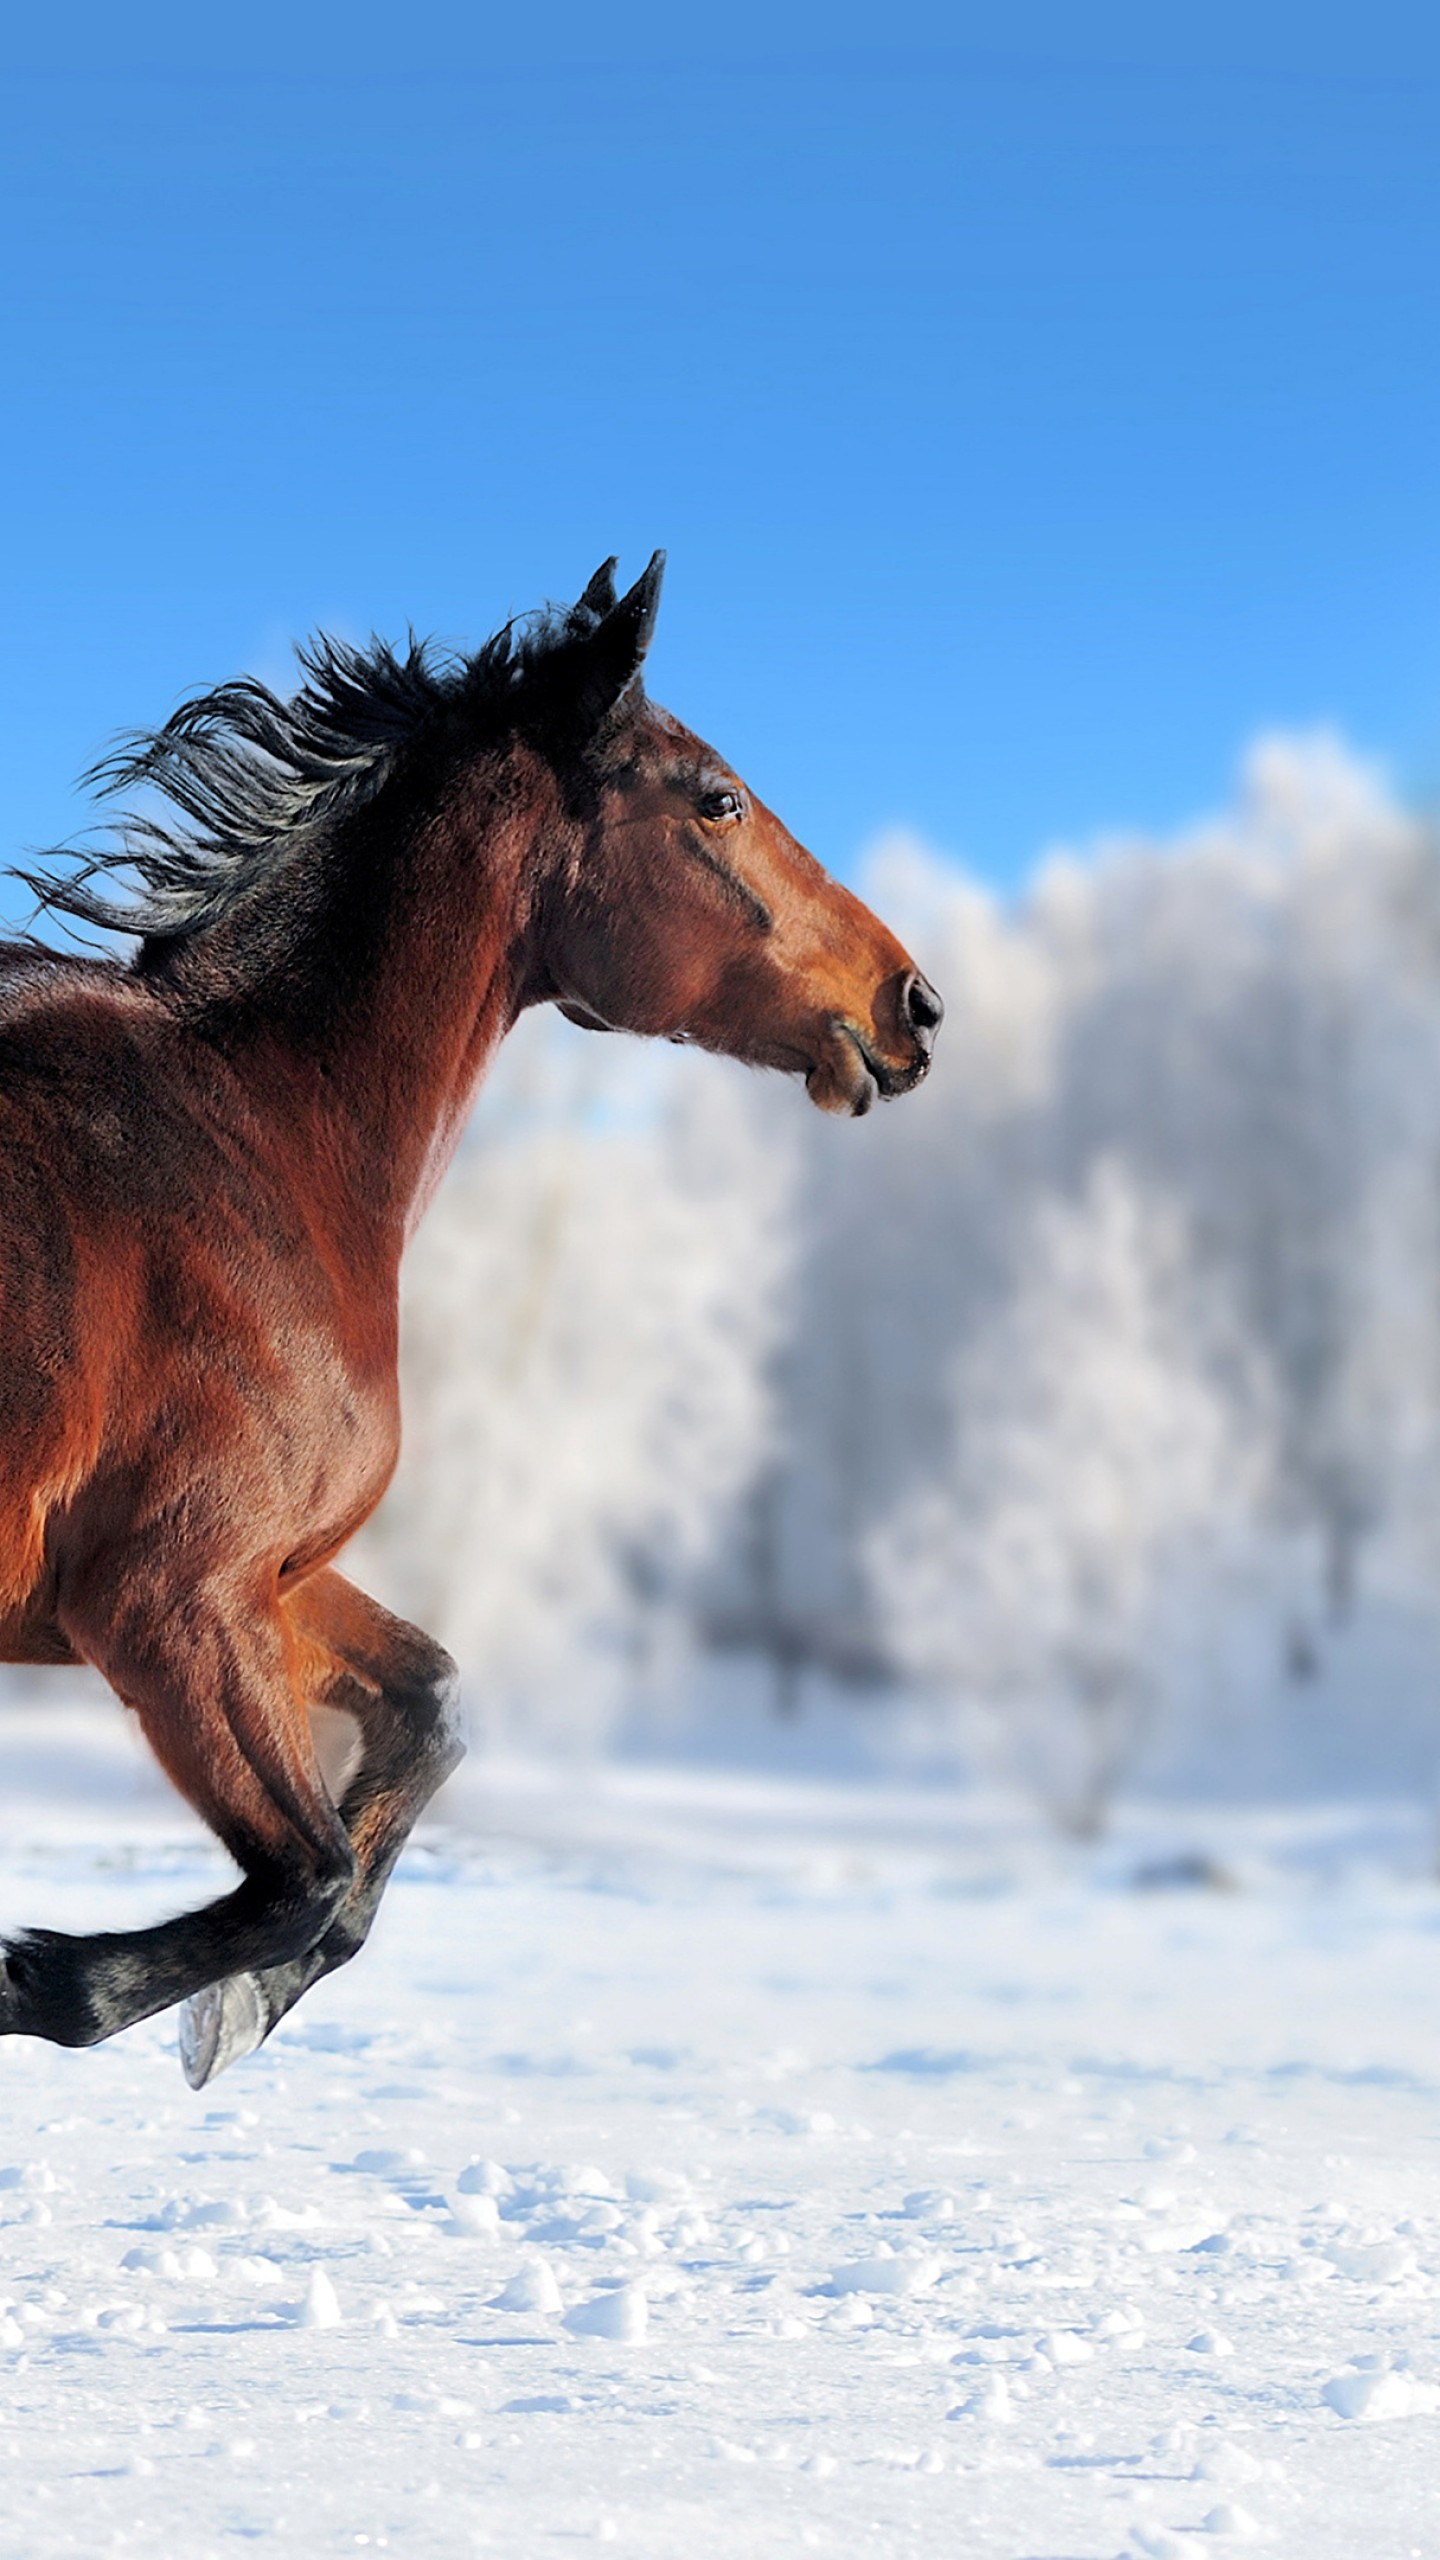 Yellow Wallpapers With Quotes Wallpaper Horse Cute Animals Snow Winter 4k Animals